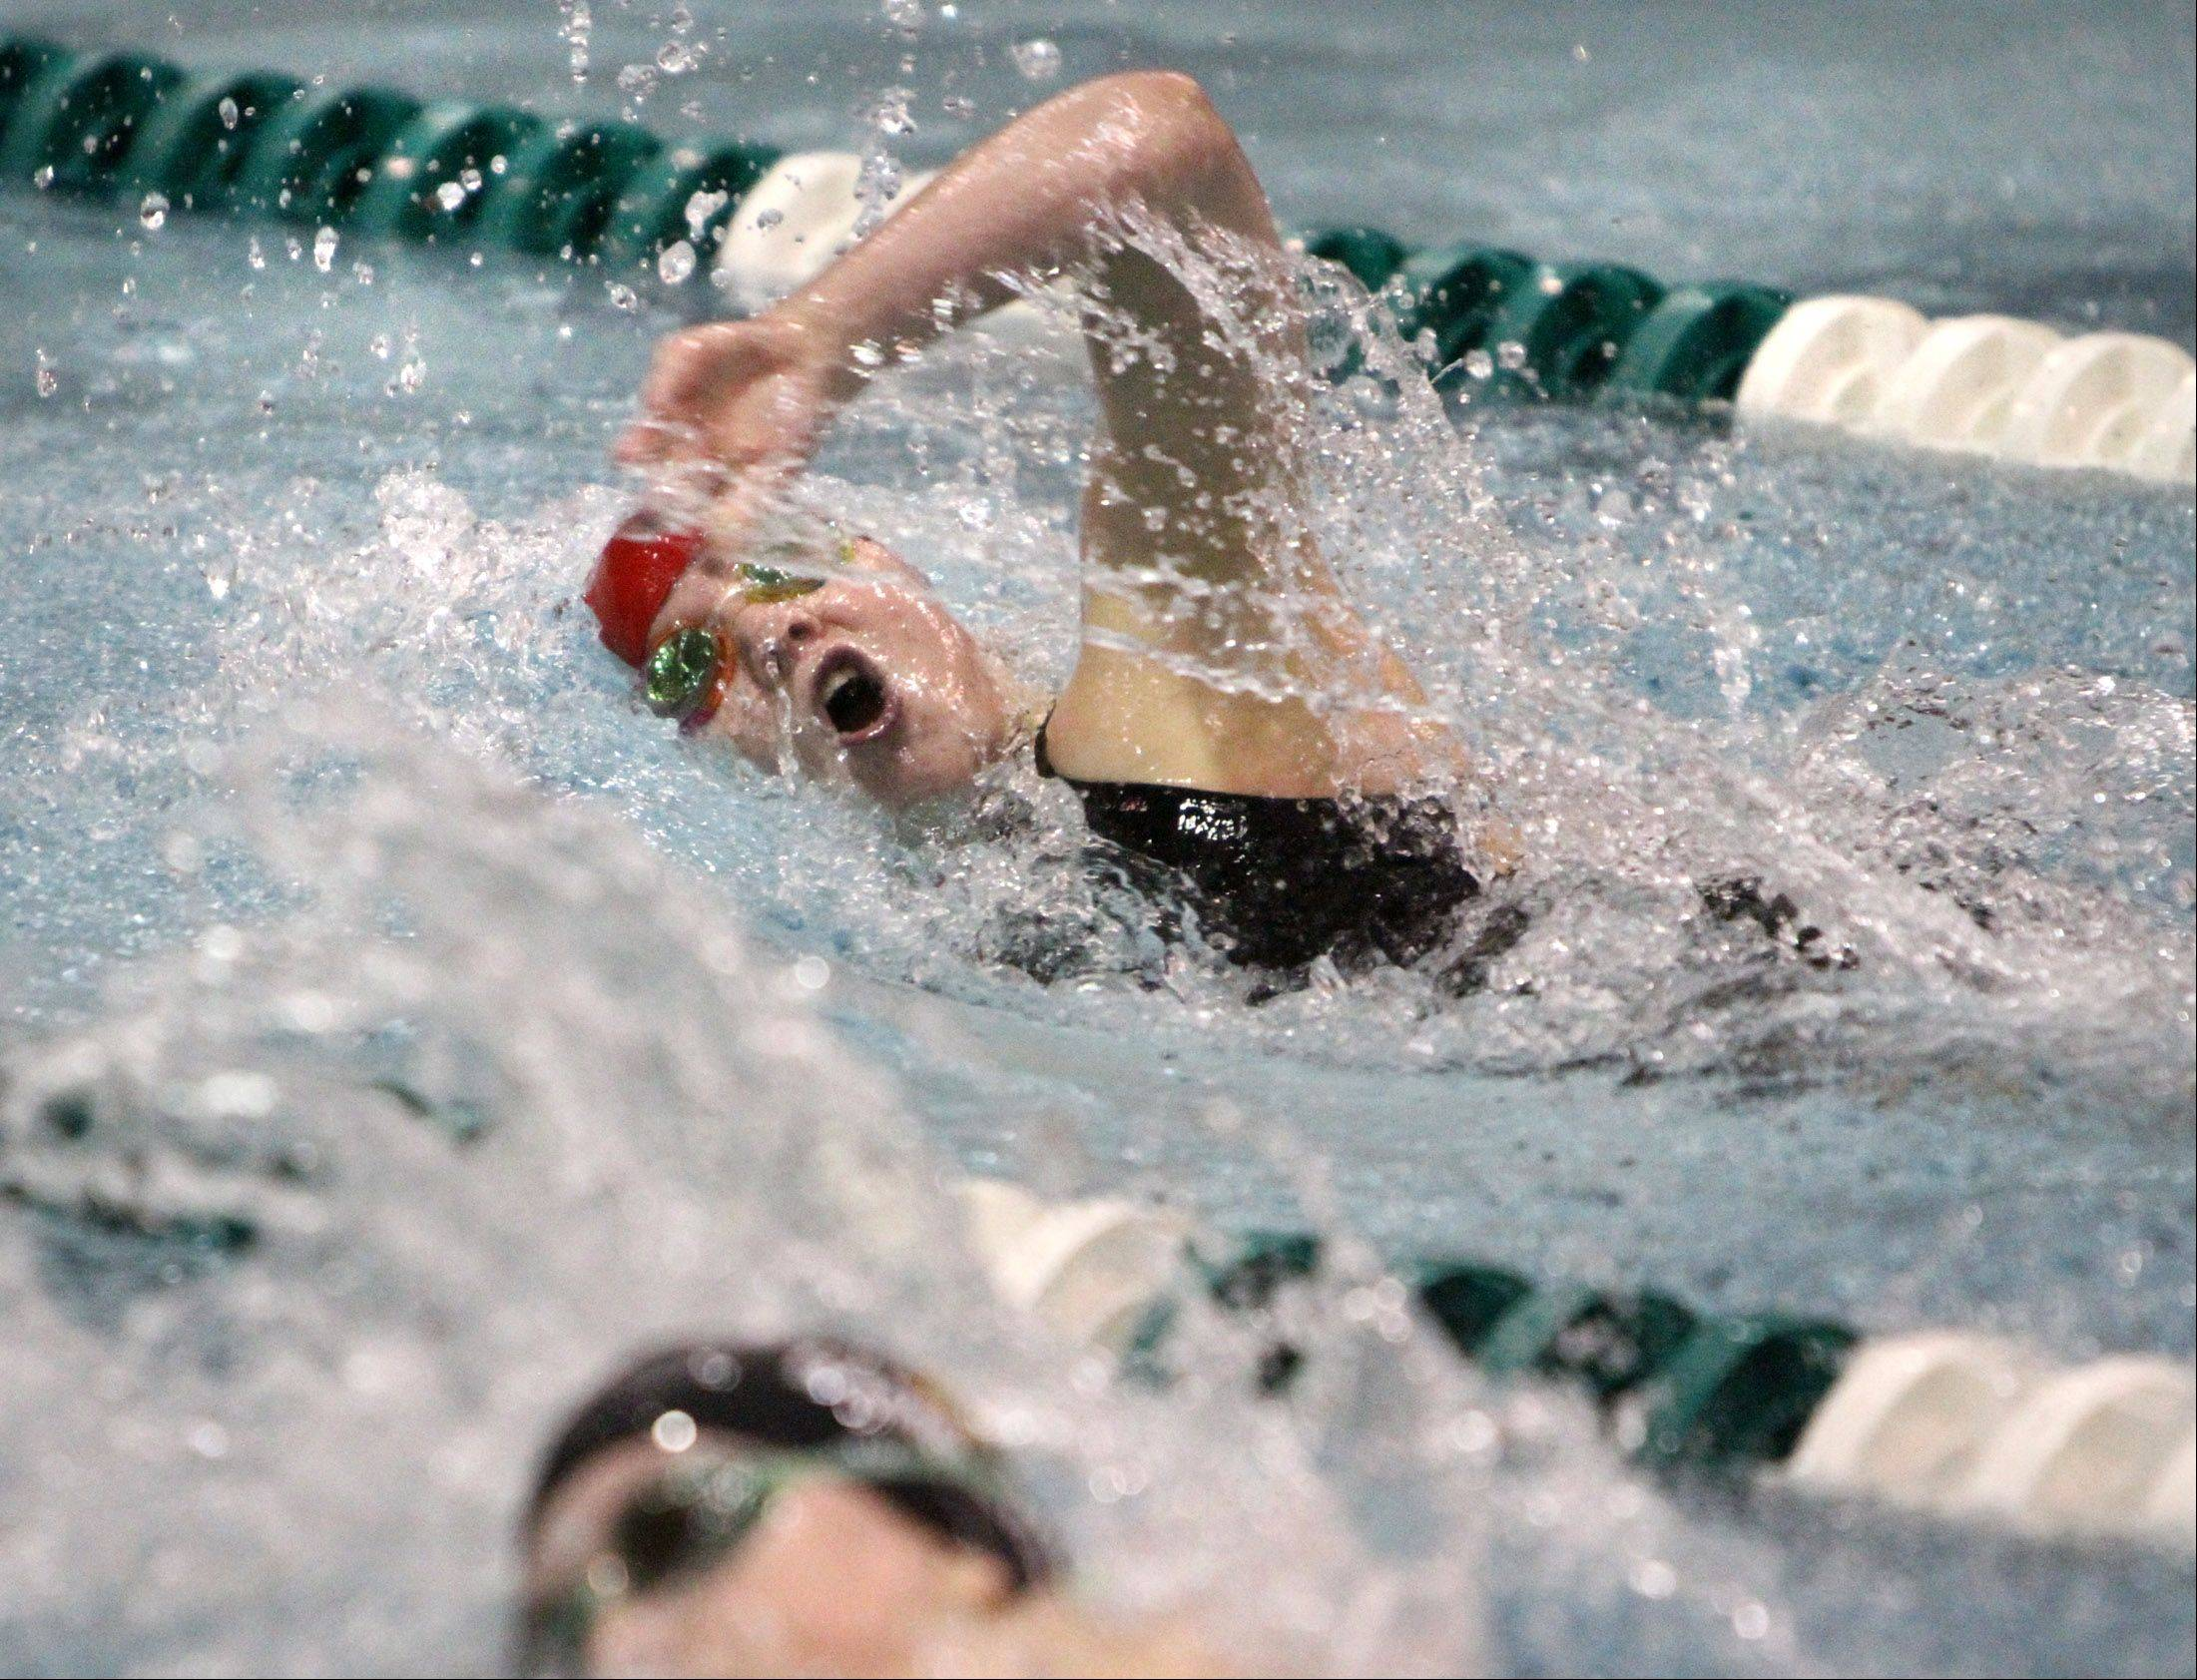 Mundelein's Erin Falconer finished tenth in the 100-yard freestyle with a time of :52.38 seconds at the IHSA state final preliminaries in Winnetka on Friday, November 18th.